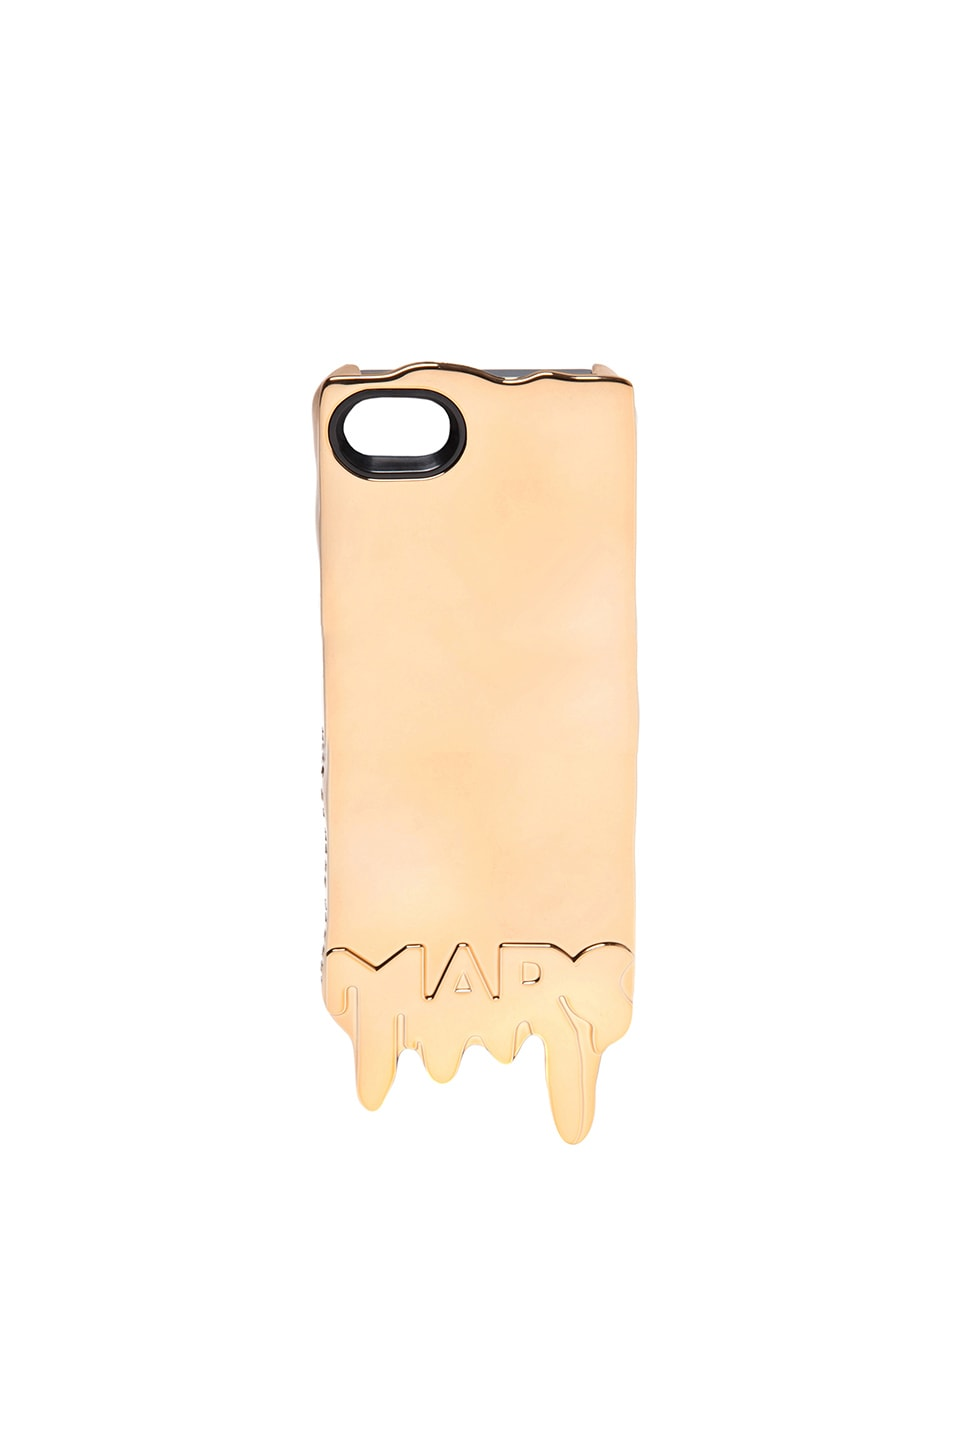 Marc by Marc Jacobs Melts iPhone5 Case in Metallic Gold